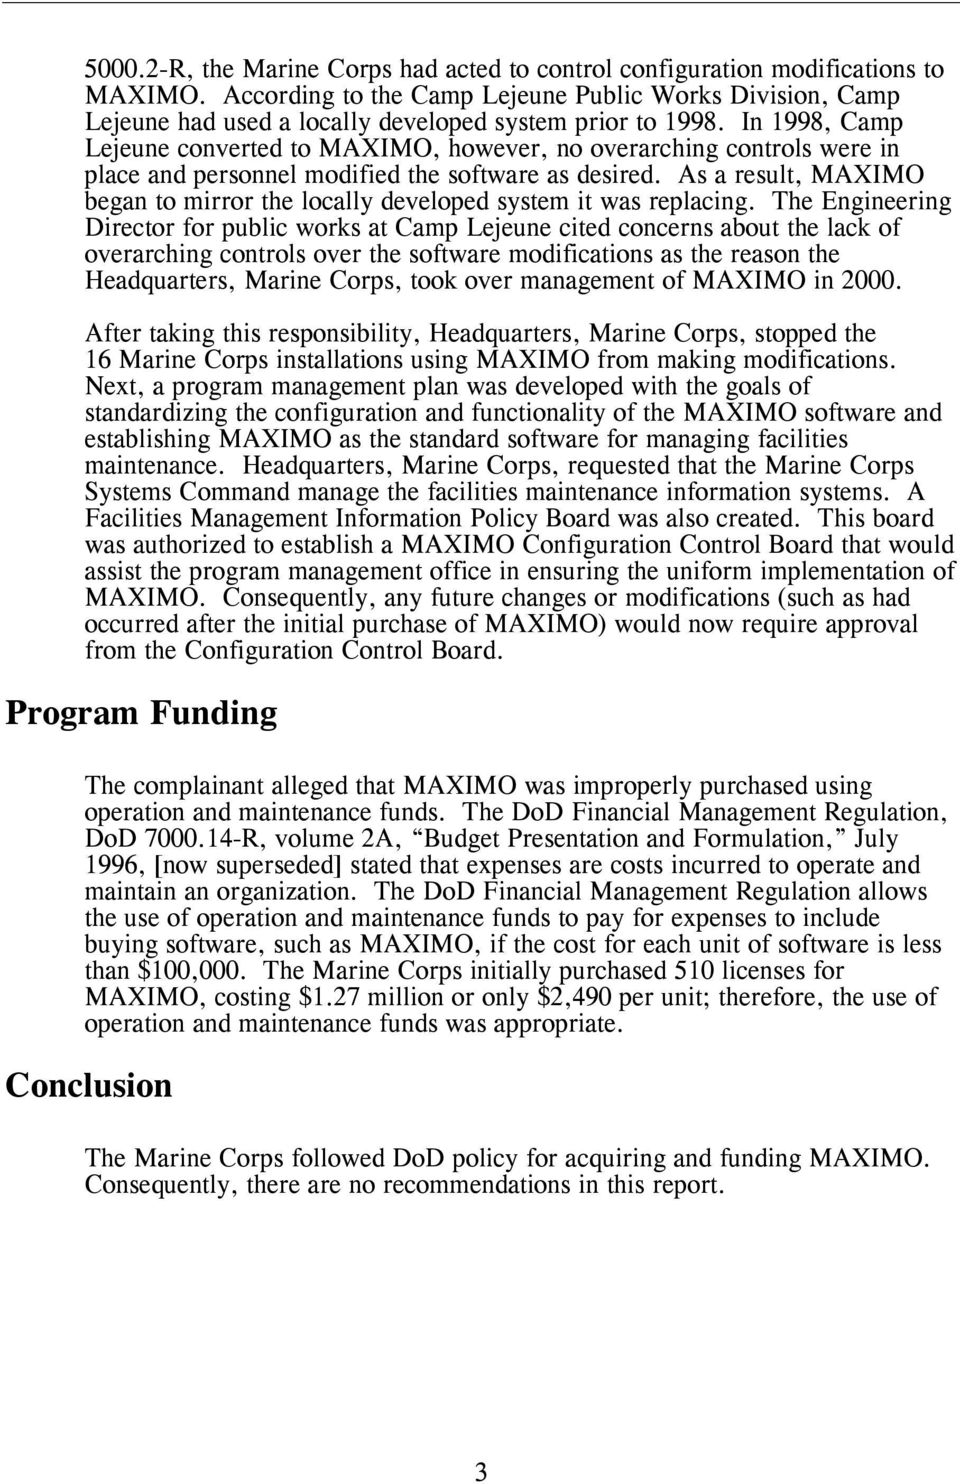 In 1998, Camp Lejeune converted to MAXIMO, however, no overarching controls were in place and personnel modified the software as desired.